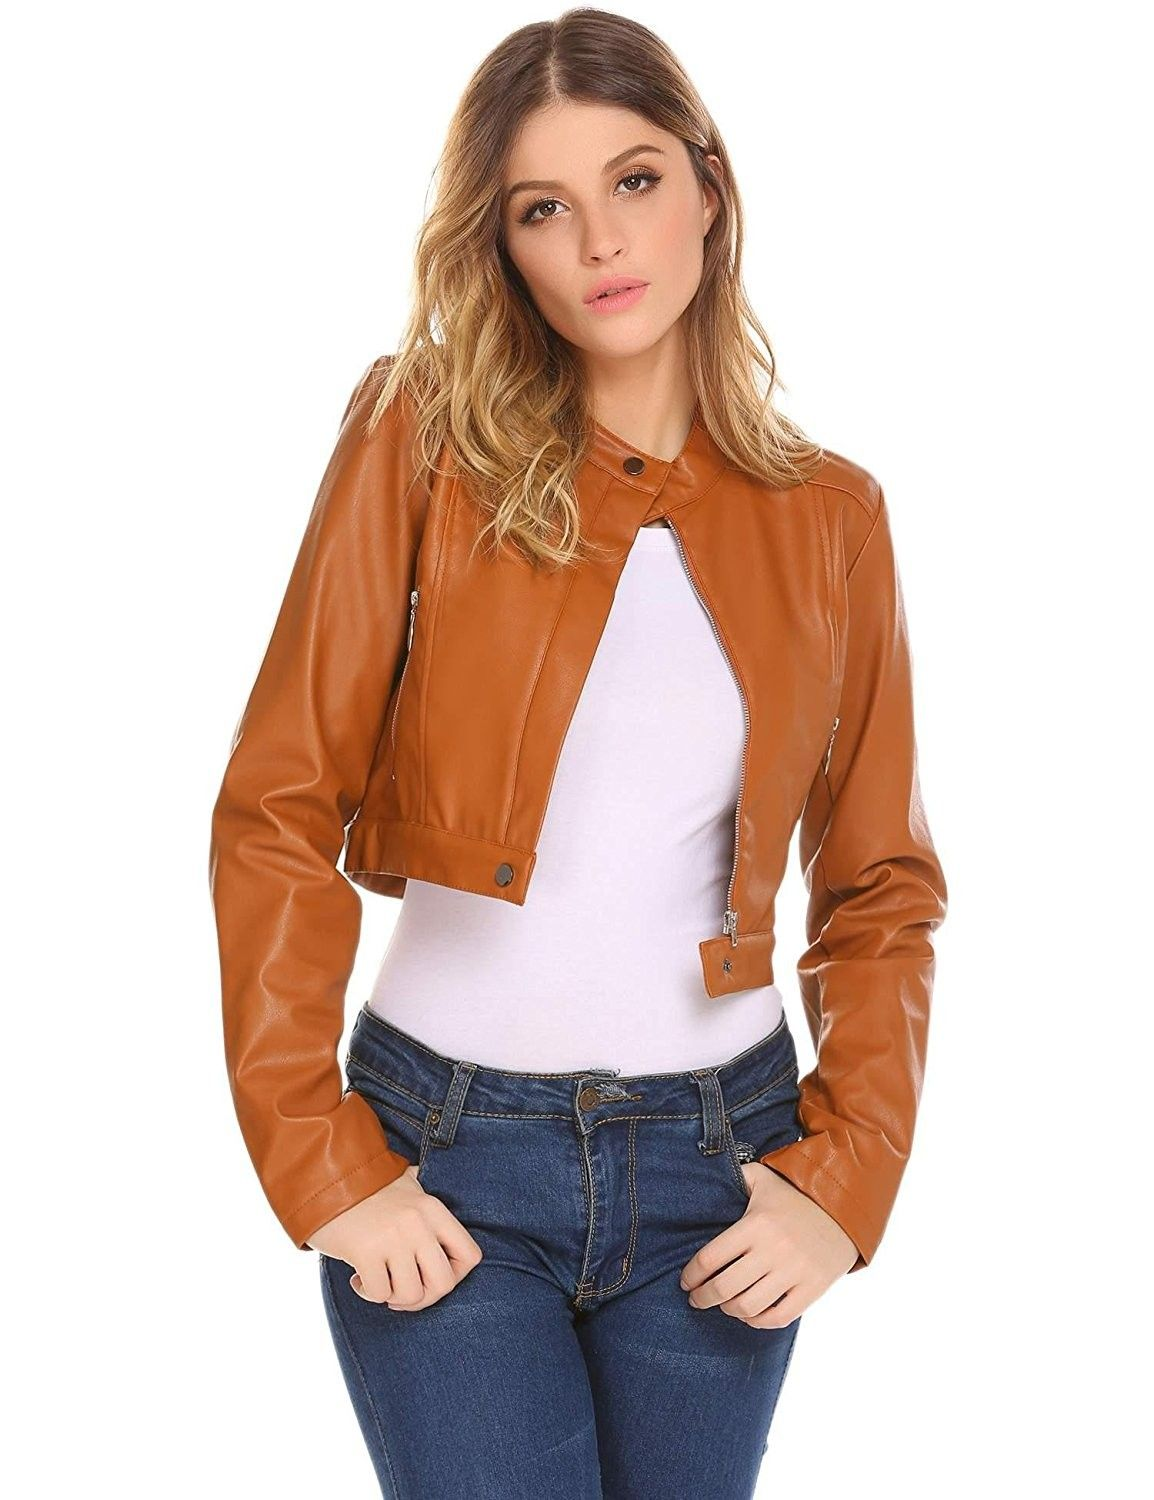 Women/'s Faux Leather Jacket New Motorcycle Leisure Zipper Stand Collar Outwear D